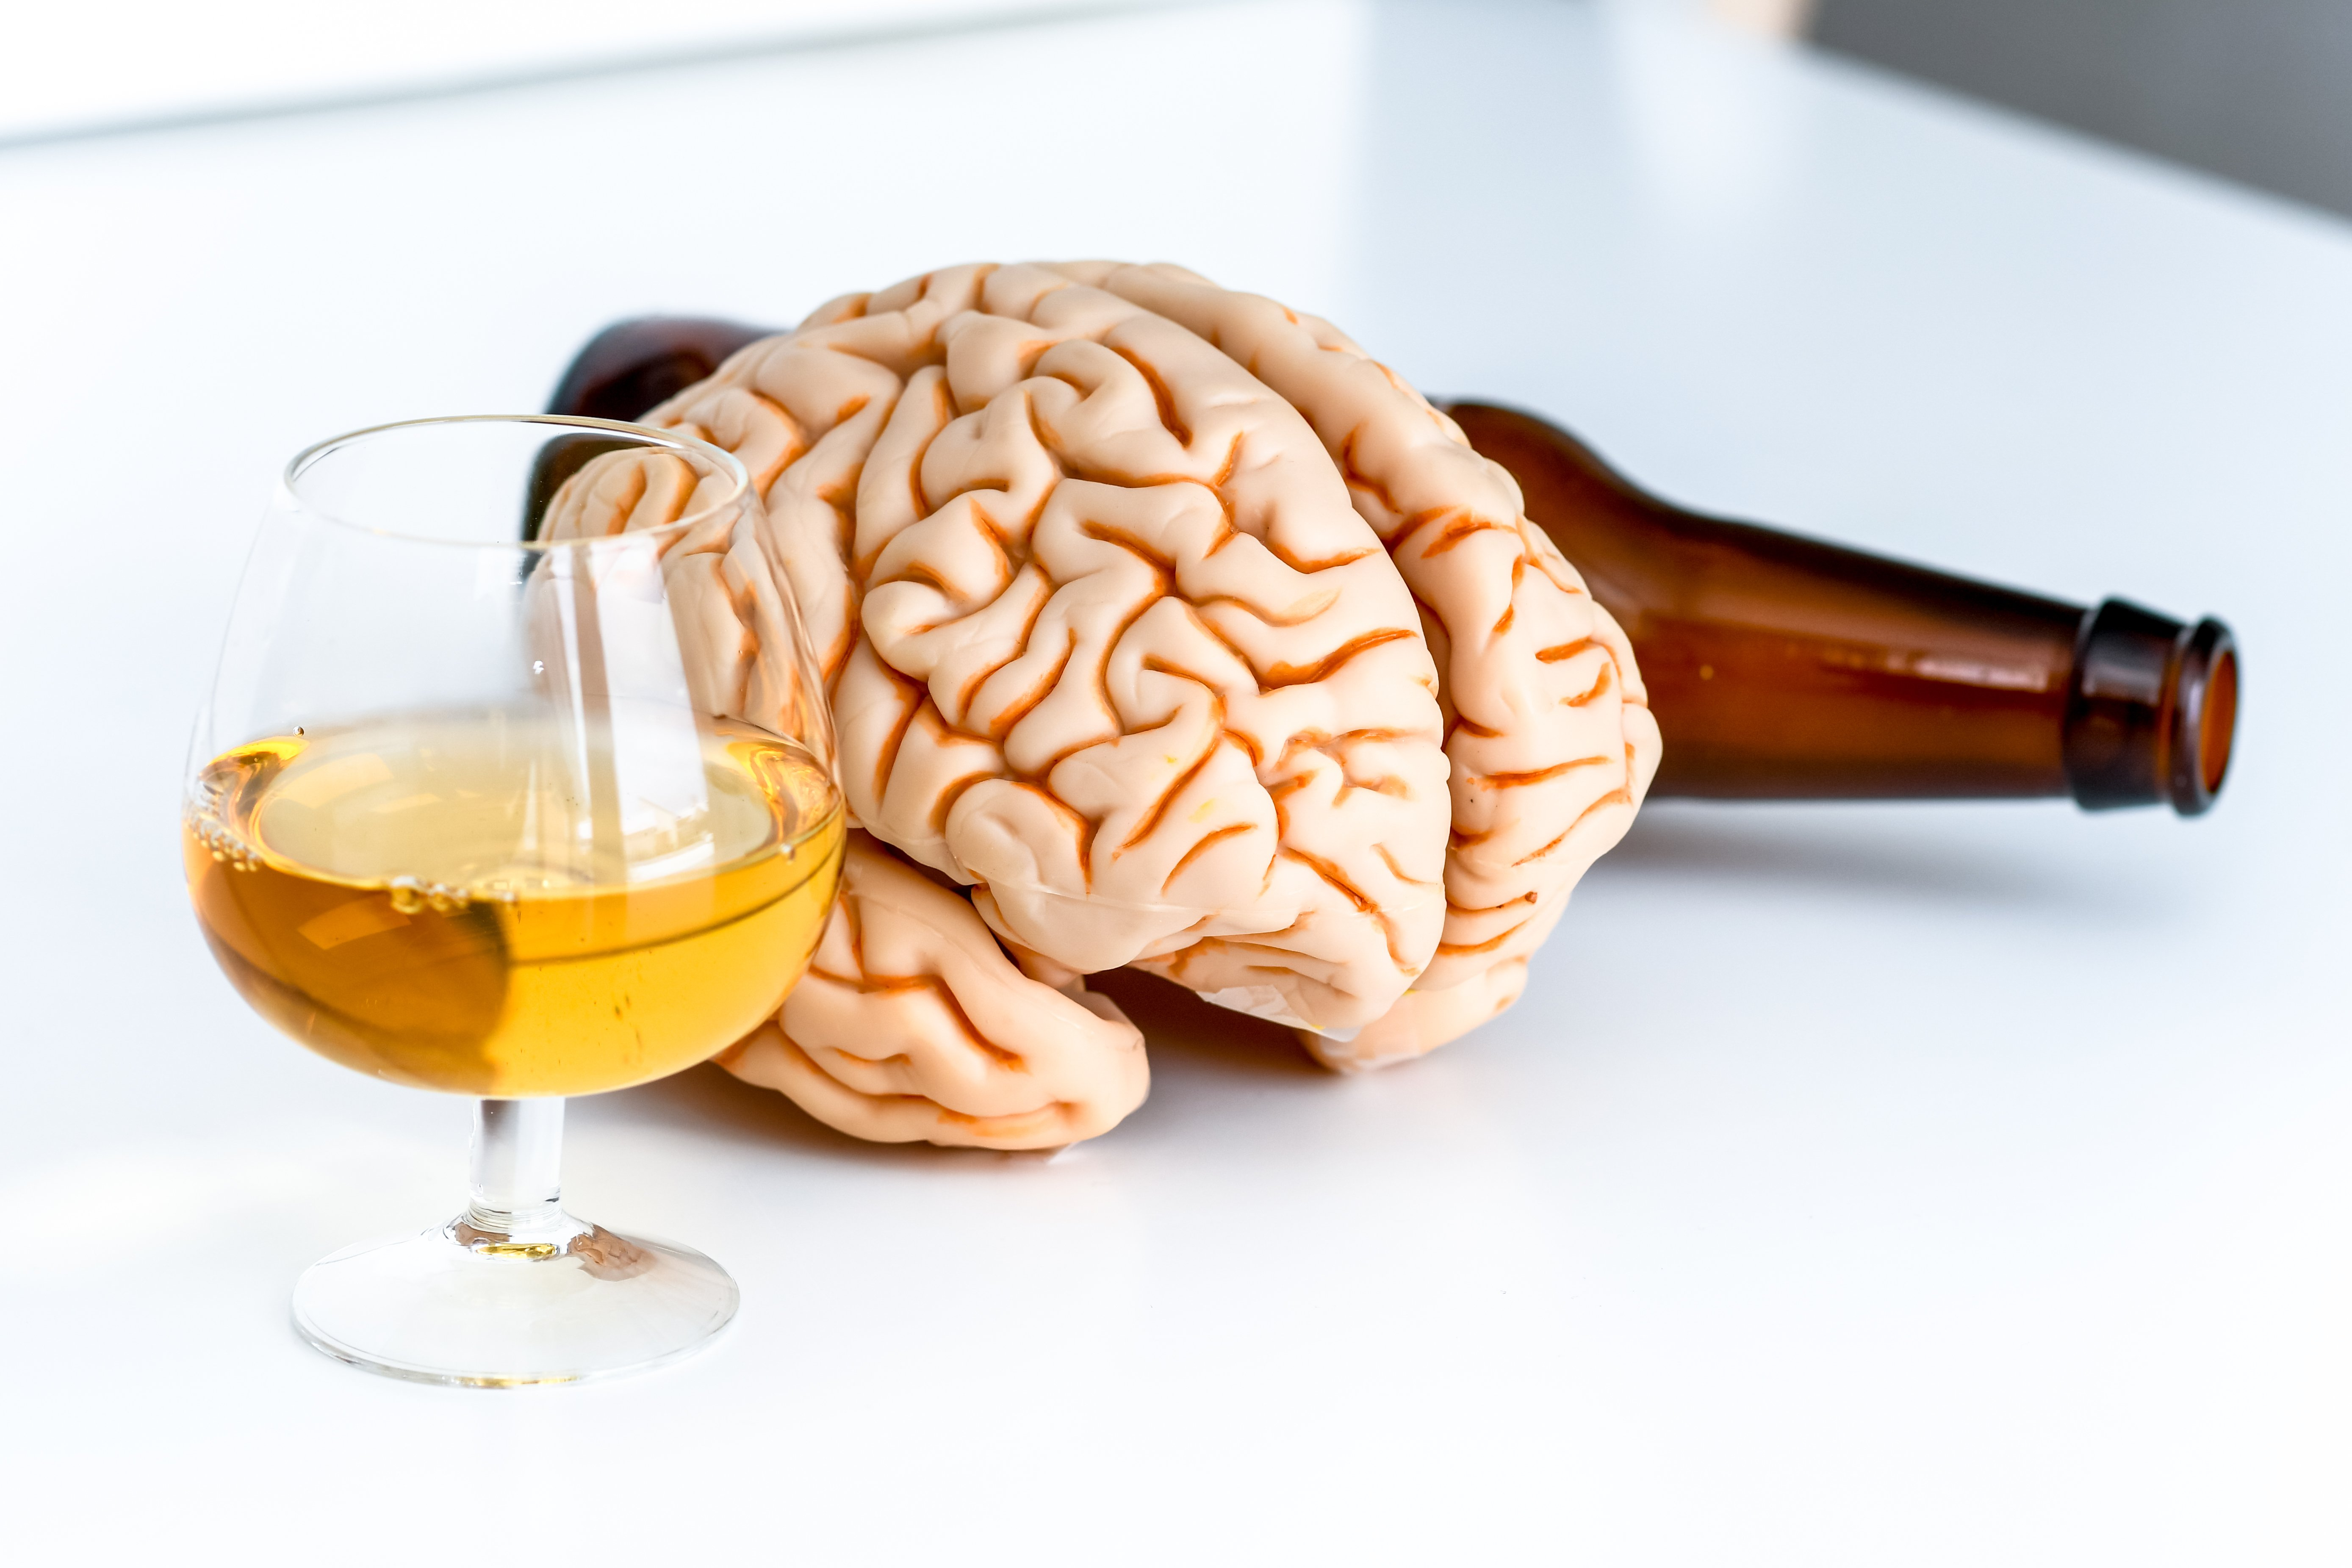 A brain and alcohol that depict How alcohol affects the brain